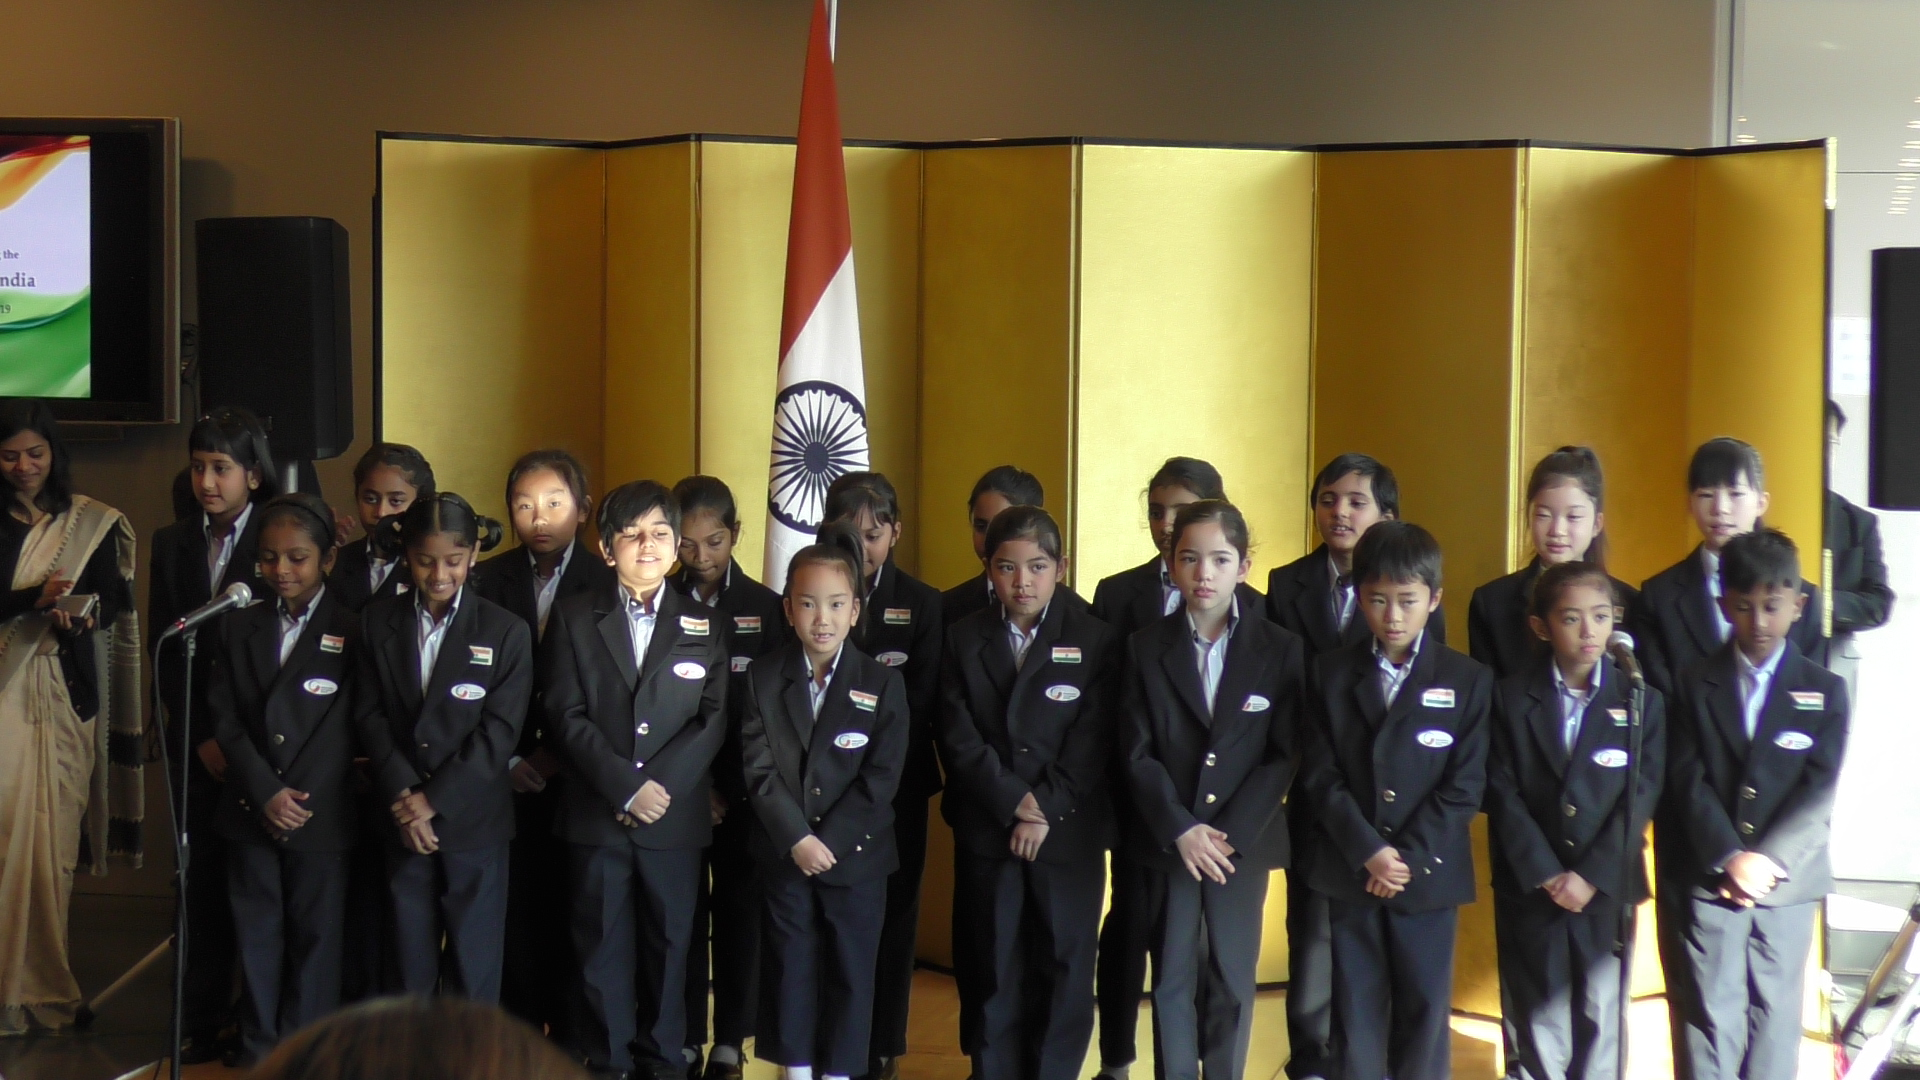 Students participate in flag hoisting at Indian Embassy on the occasion of Republic Day